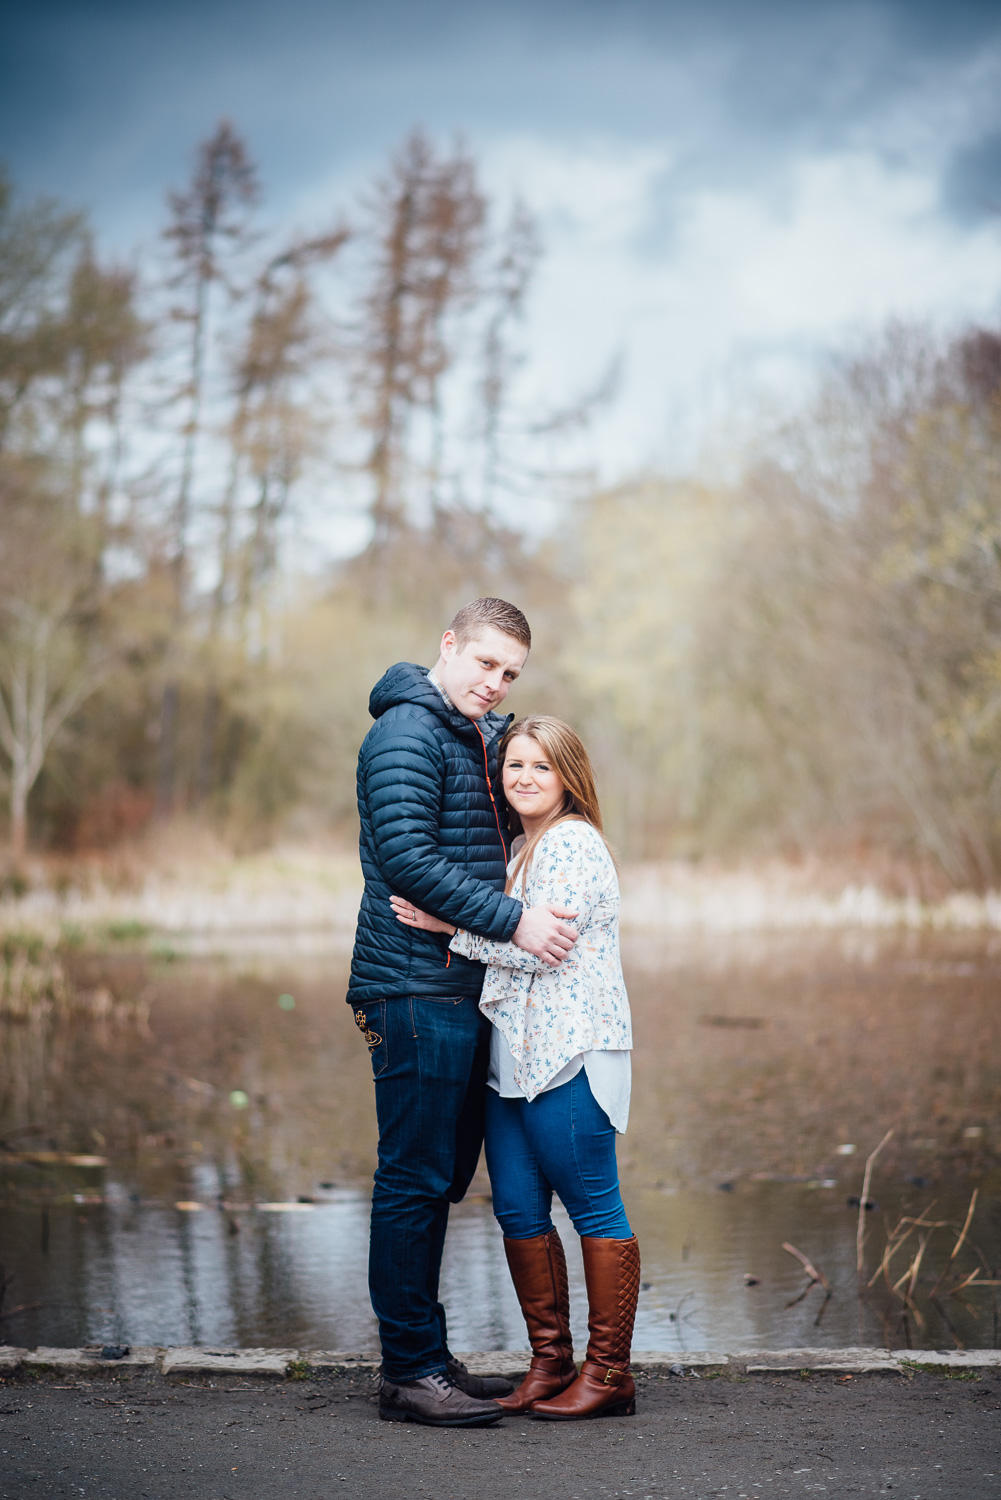 Louise & Campbell's E-Session-49.jpg